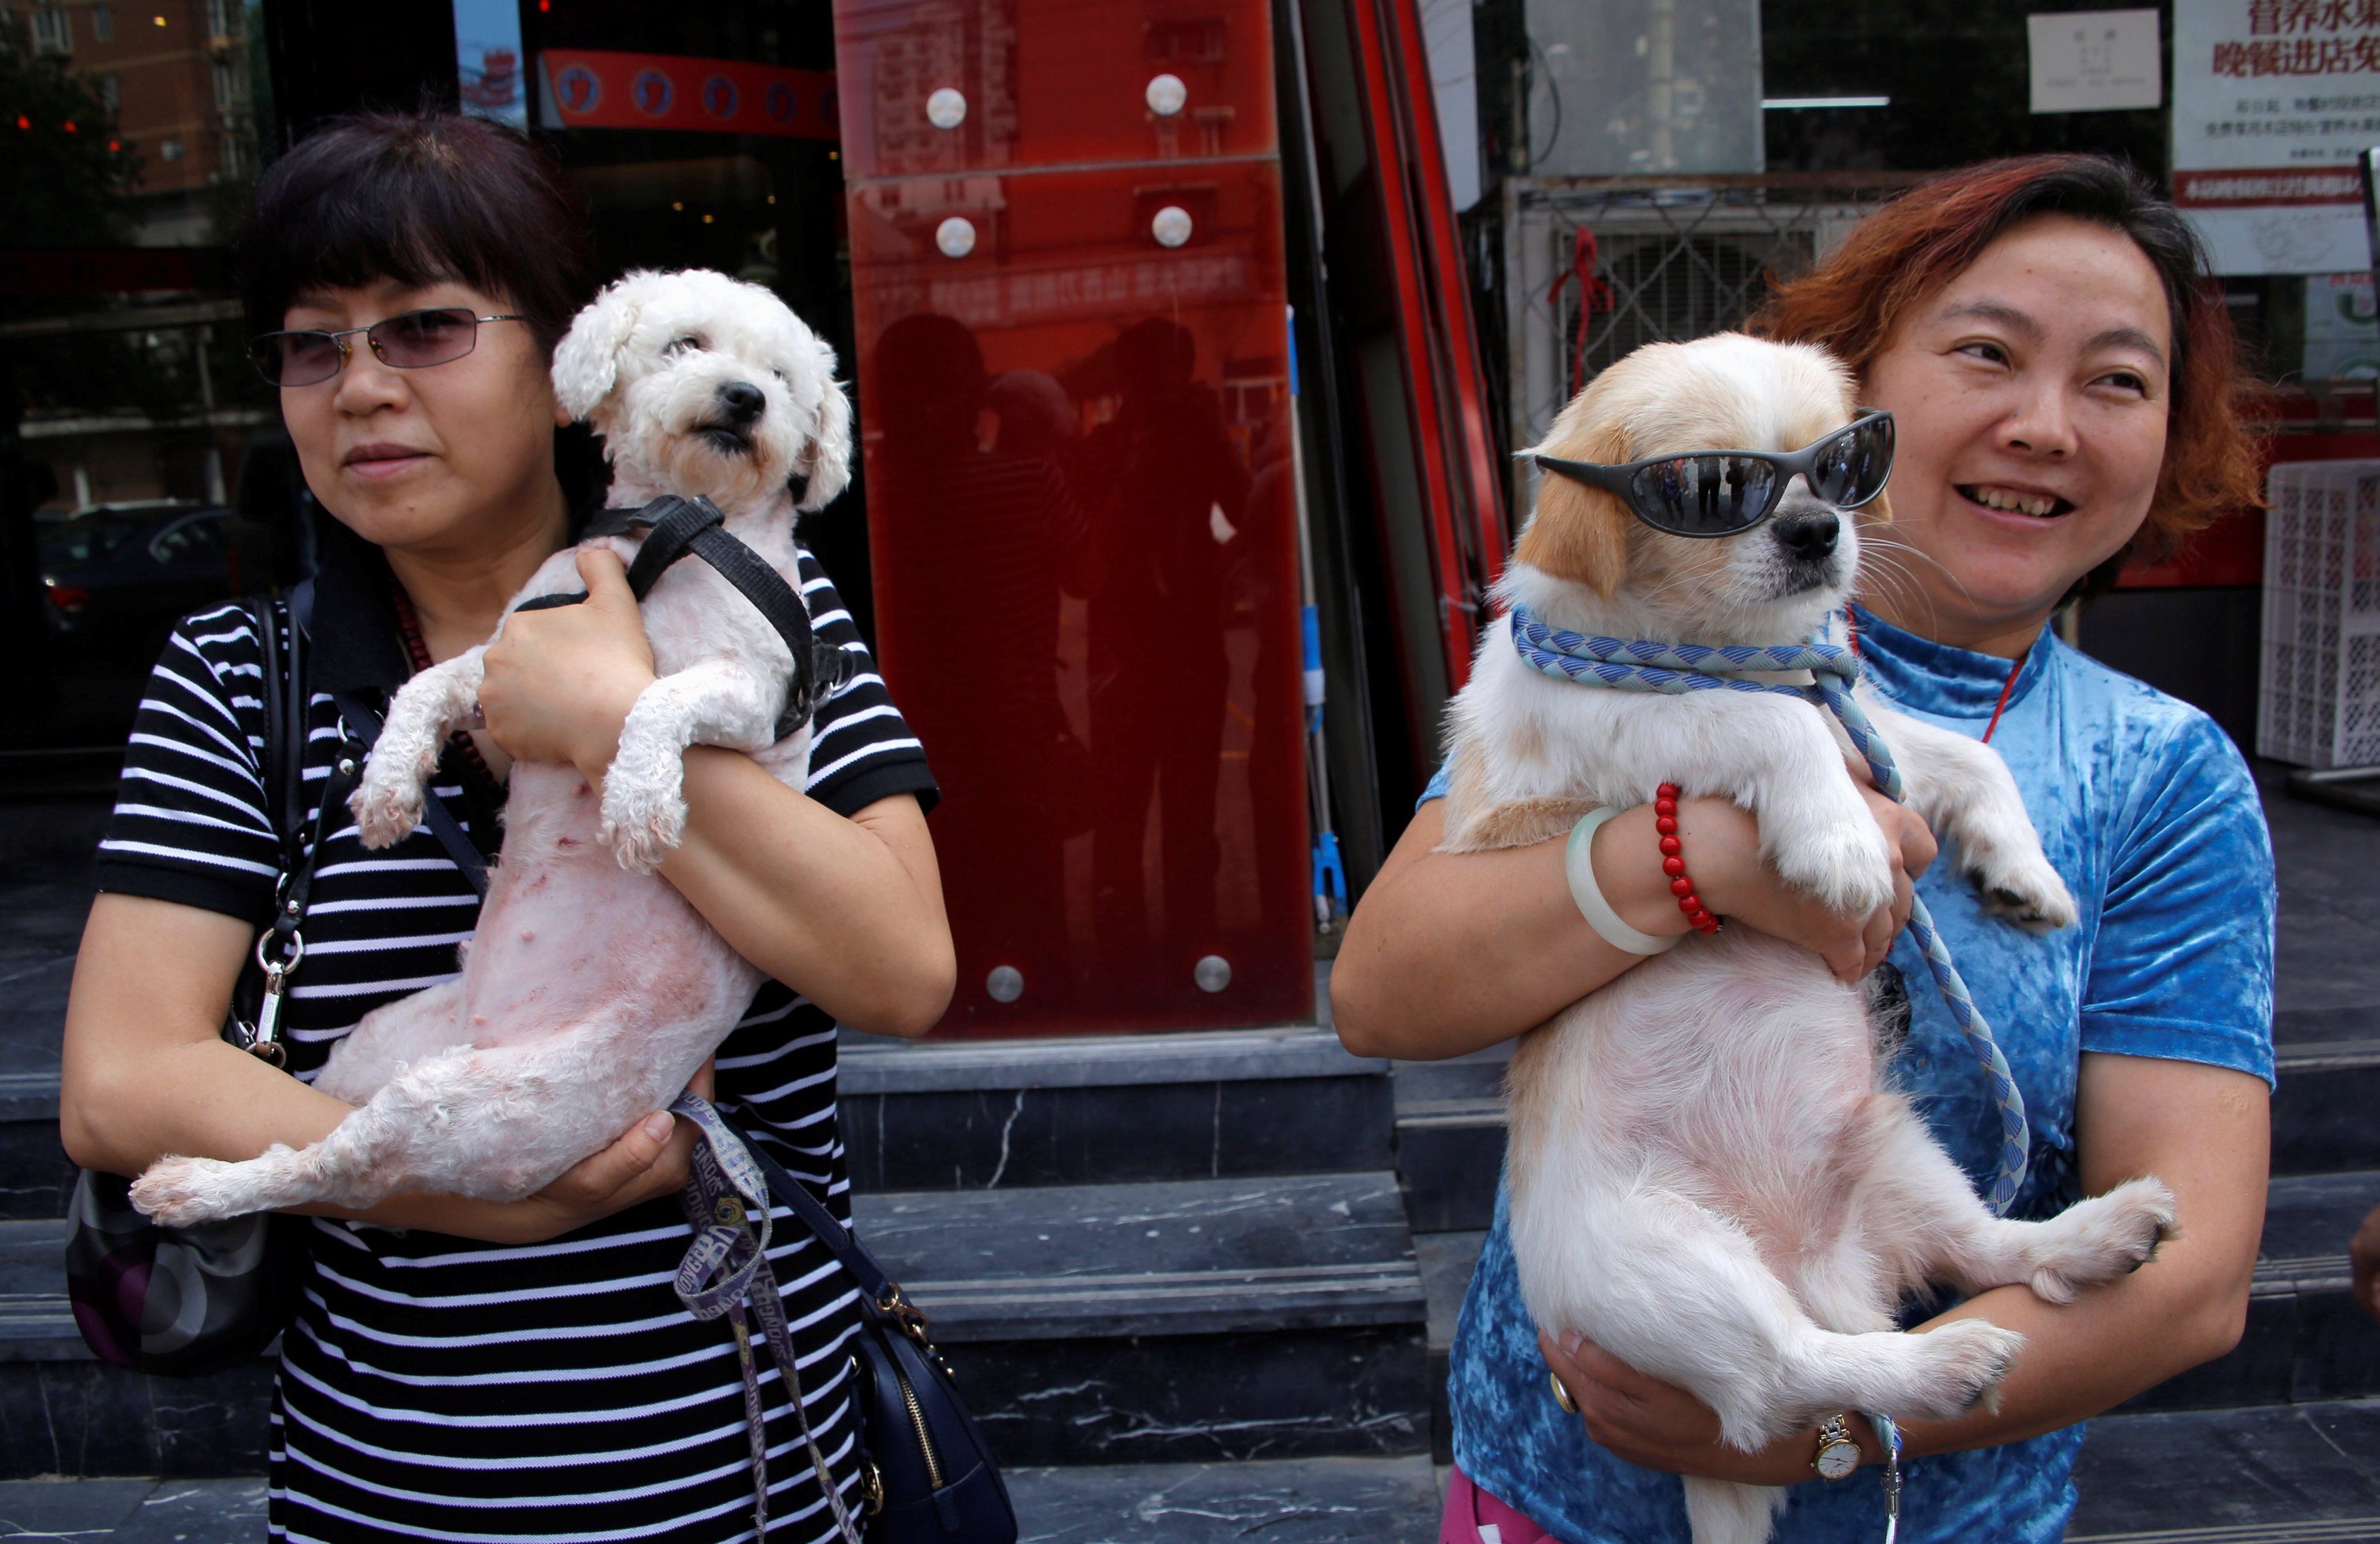 Yulin Dog Meat Festival  Vendors Cover Signs Amid Opposition From